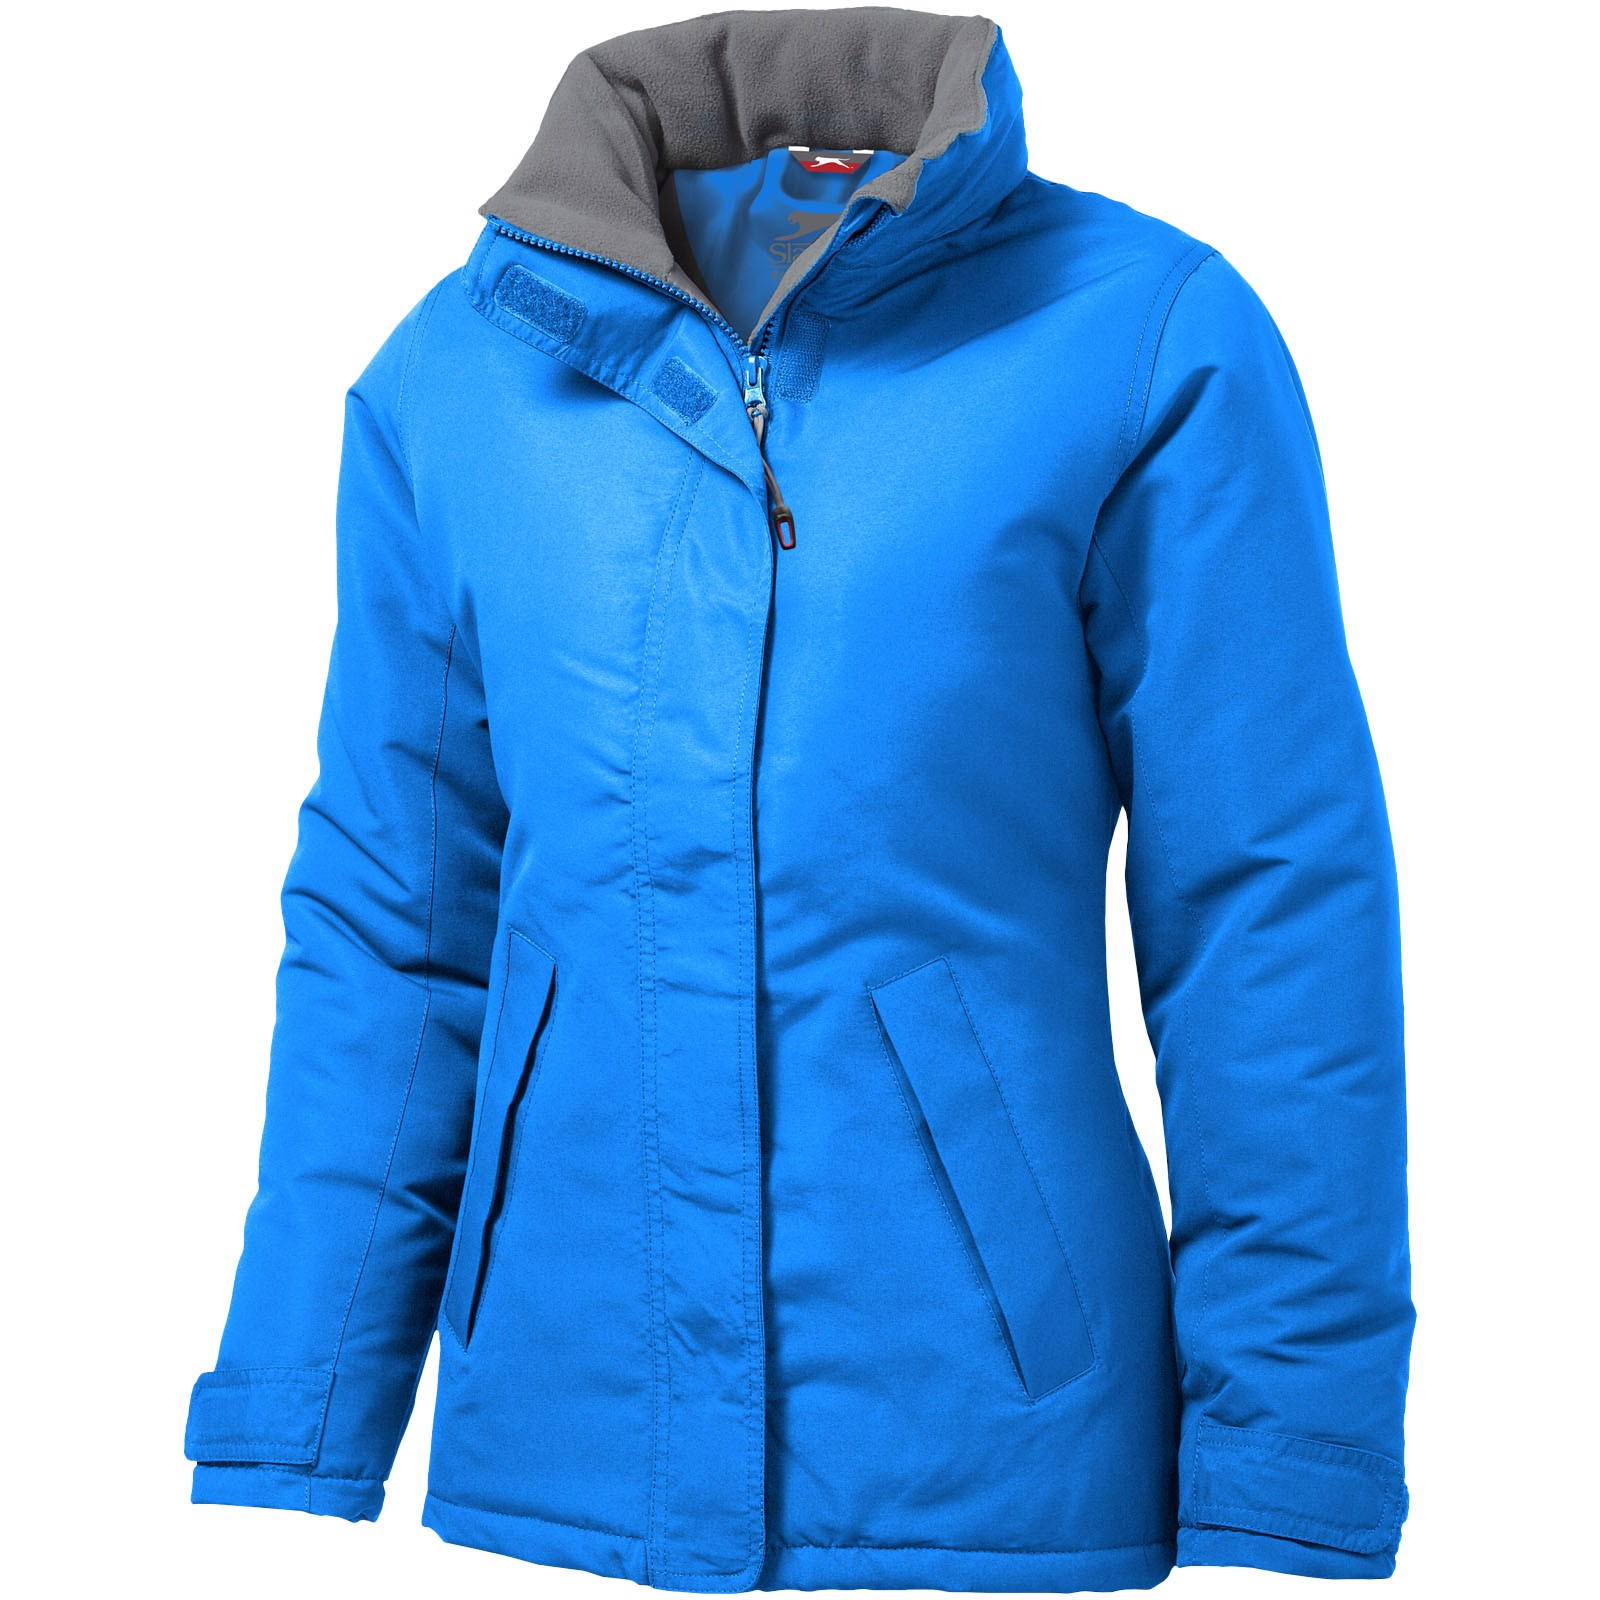 Under Spin ladies insulated jacket - Sky blue / S